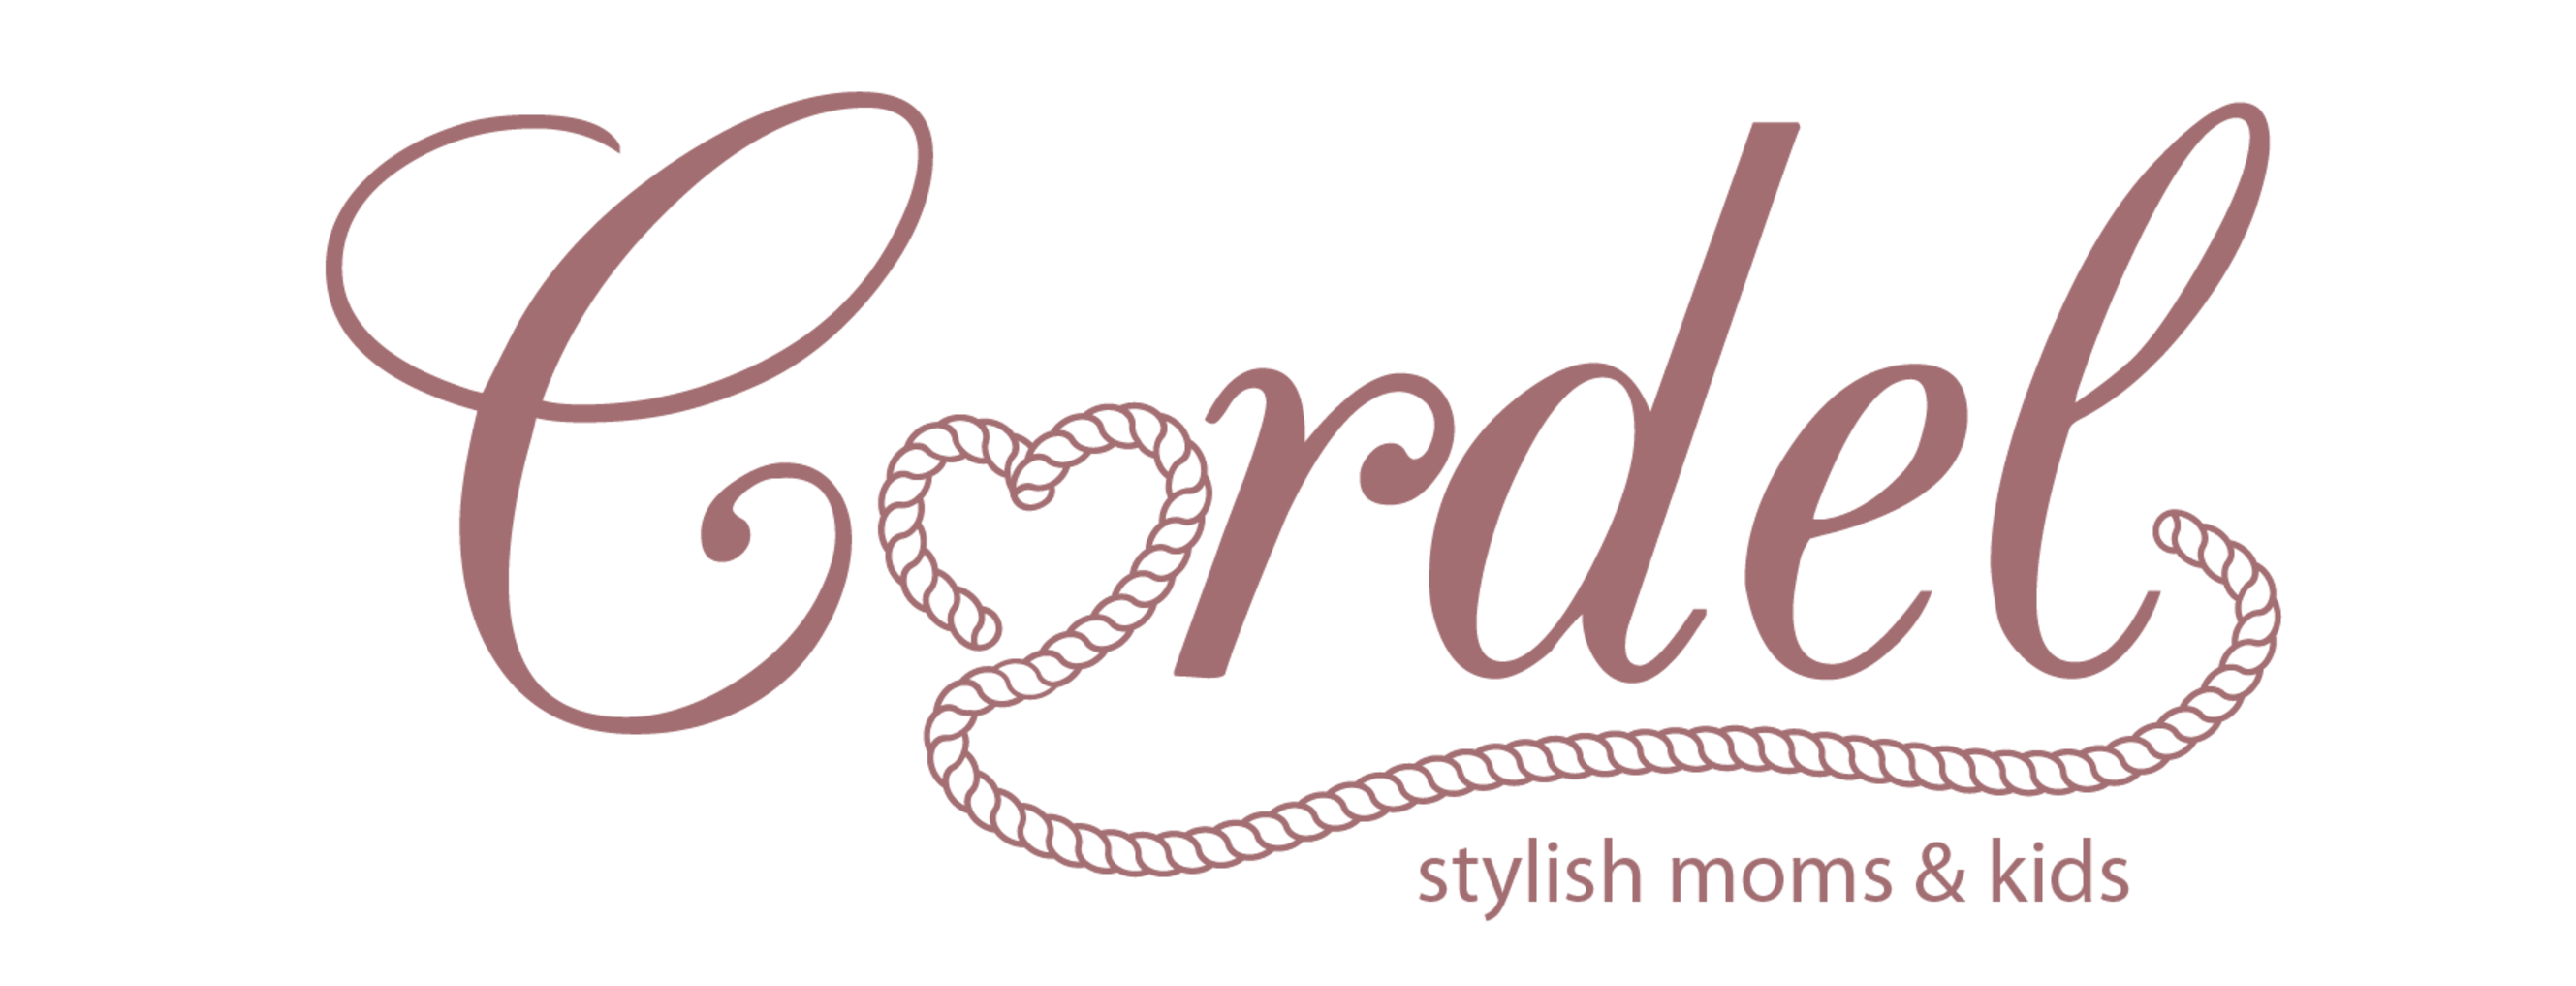 Cordel - stylish moms & kids